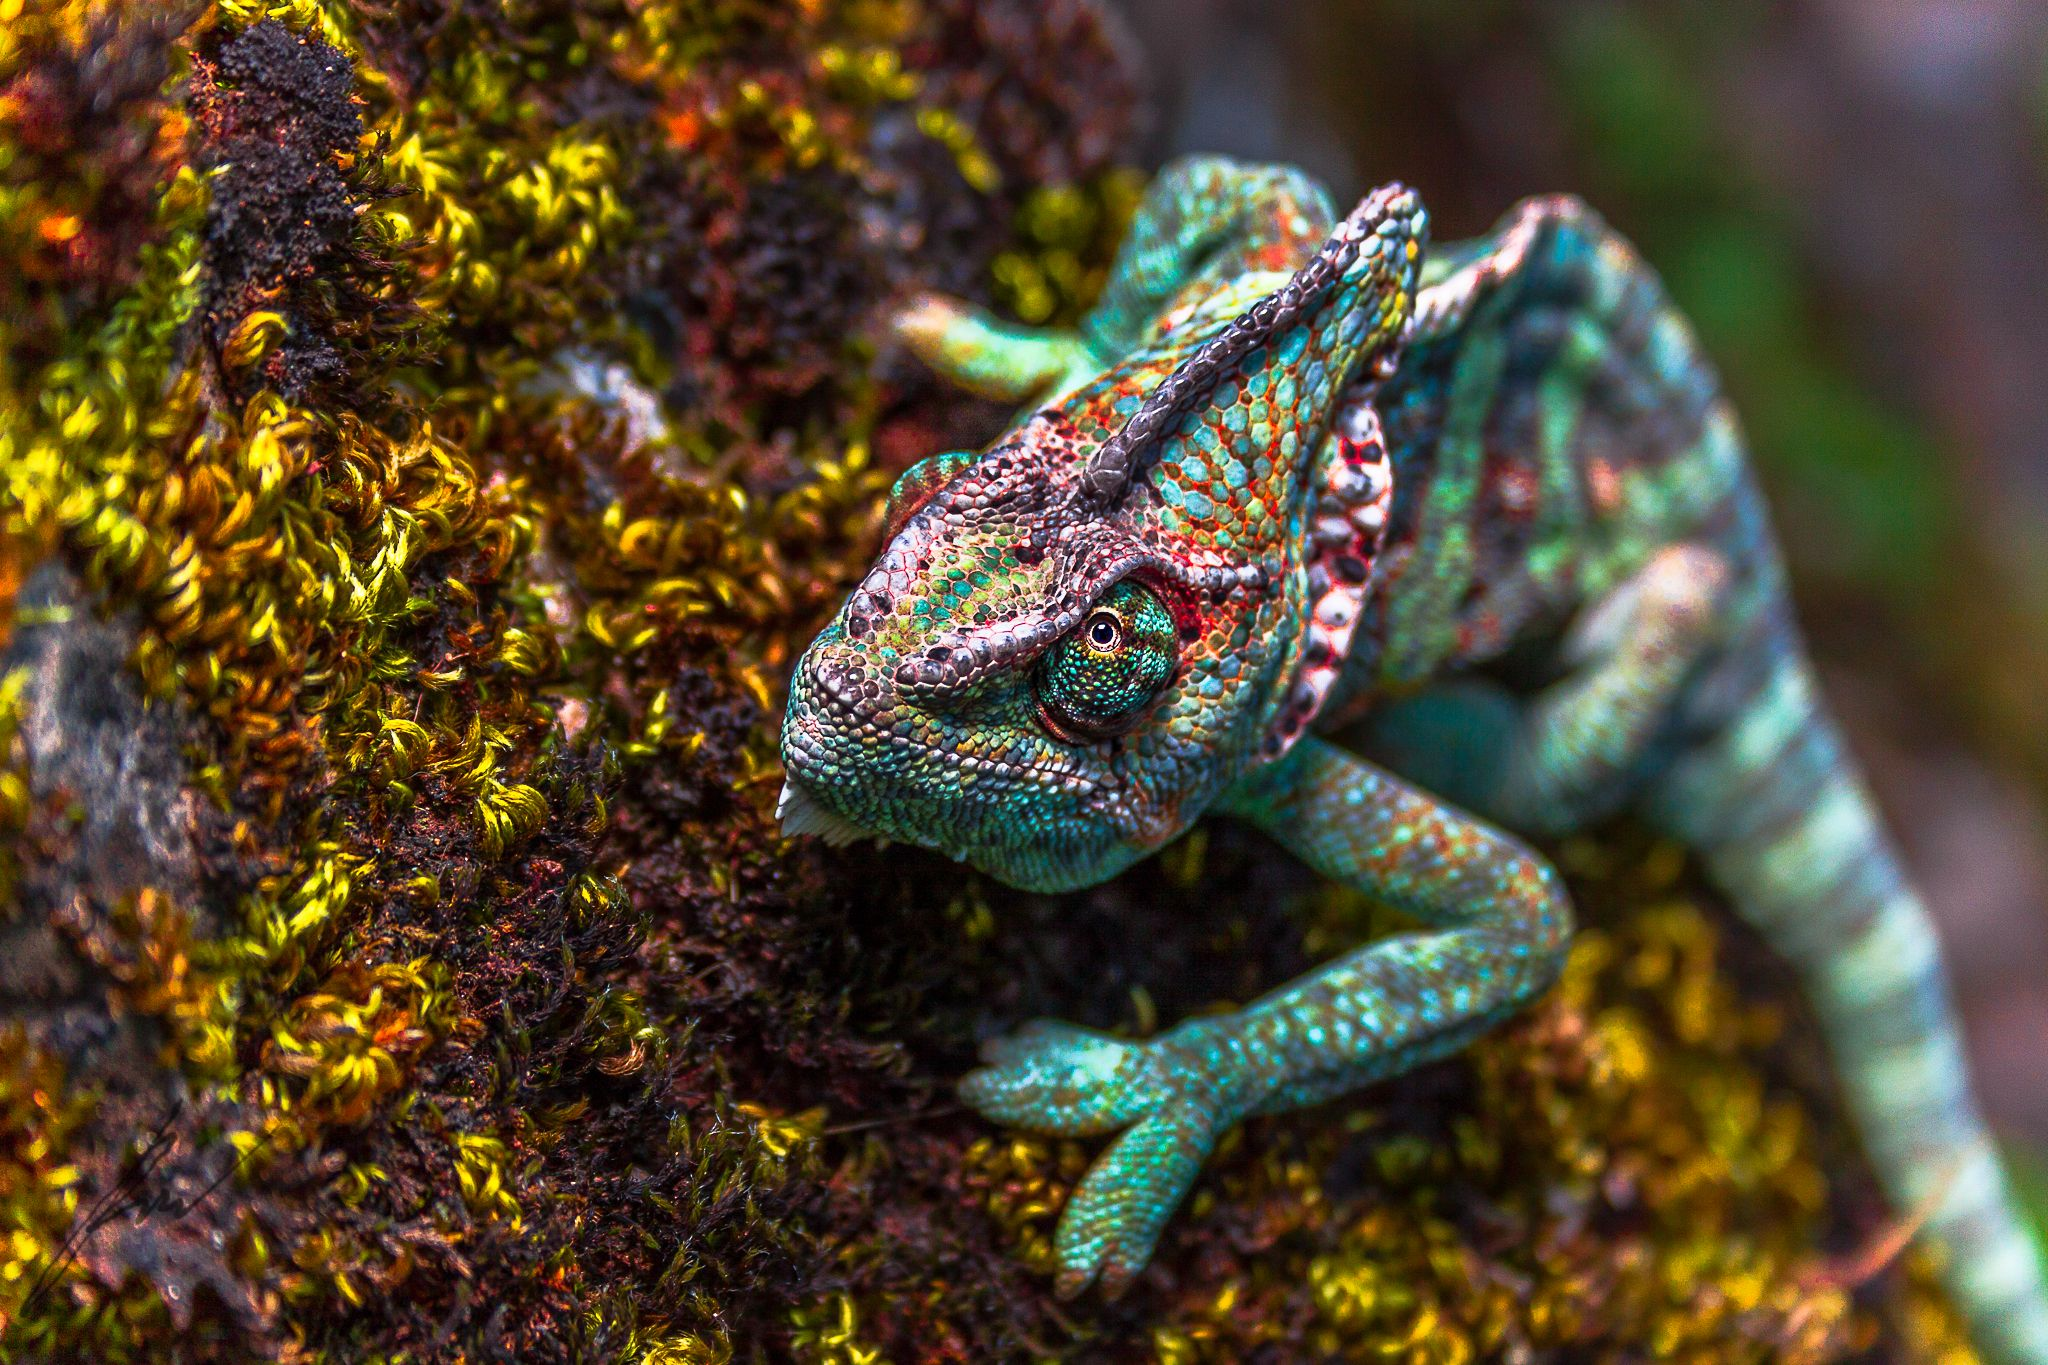 A pet chameleon's close-up reveals the bright colors of its scaly skin. The common assumption that chameleons change color to blend into their surroundings isn't the whole story: The reptiles' showy skin also communicates information to its potential enemies or mates.